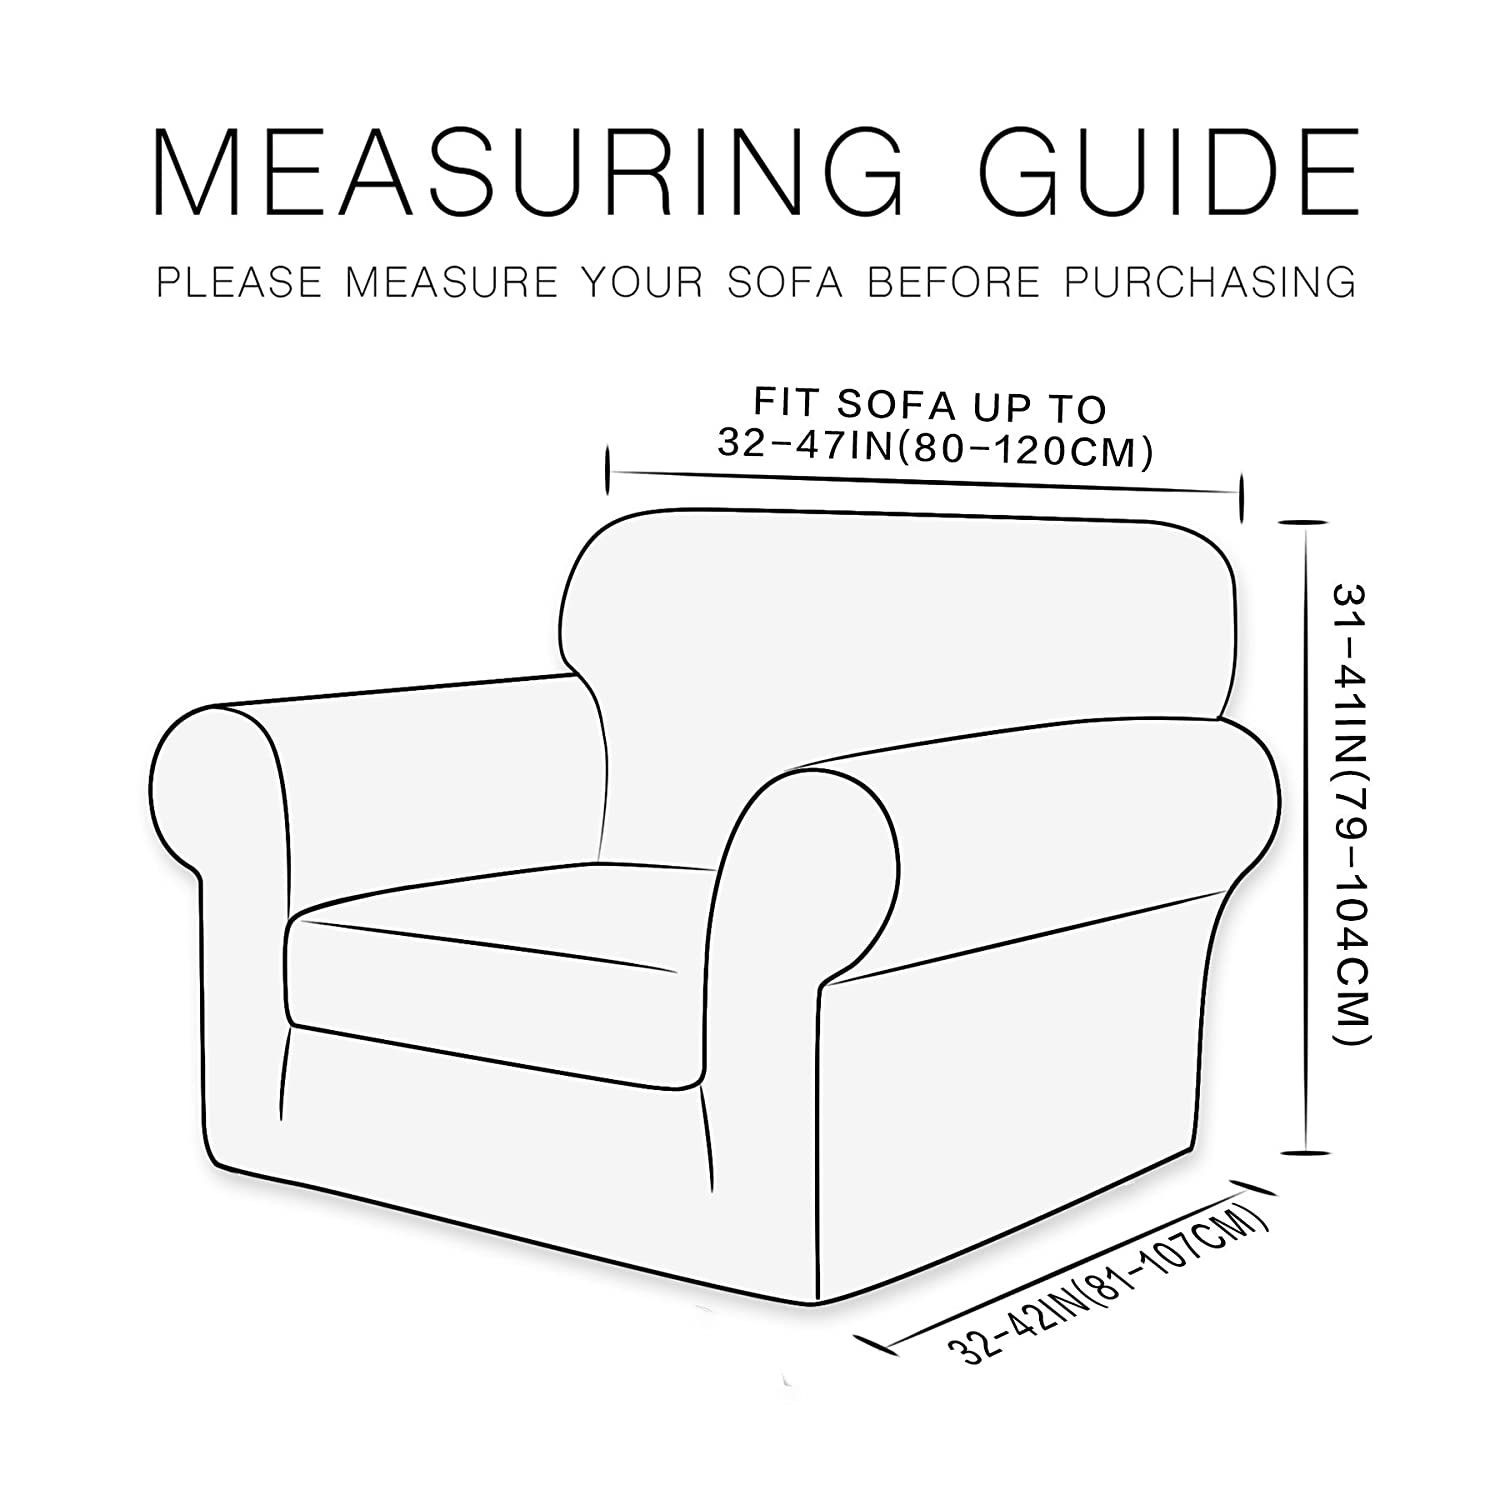 Sofa, Blue CHUN YI 2-Piece Knit Polyester Spandex Fabric Sofa Slipcover Stretch Sofa Couch Cover Furniture Protector for 3 Seats Sofa with Separate Seat Cushion Cover